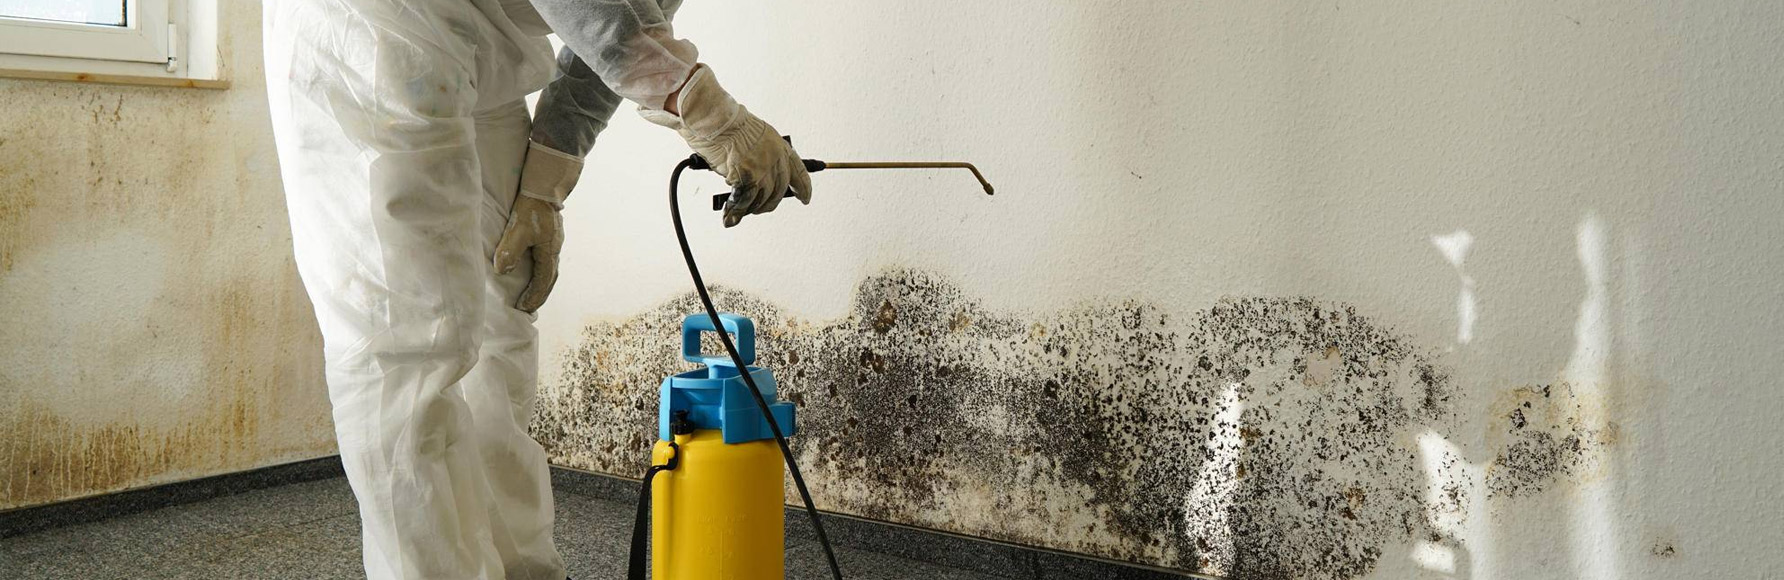 Dangers of Mold from Water Damage